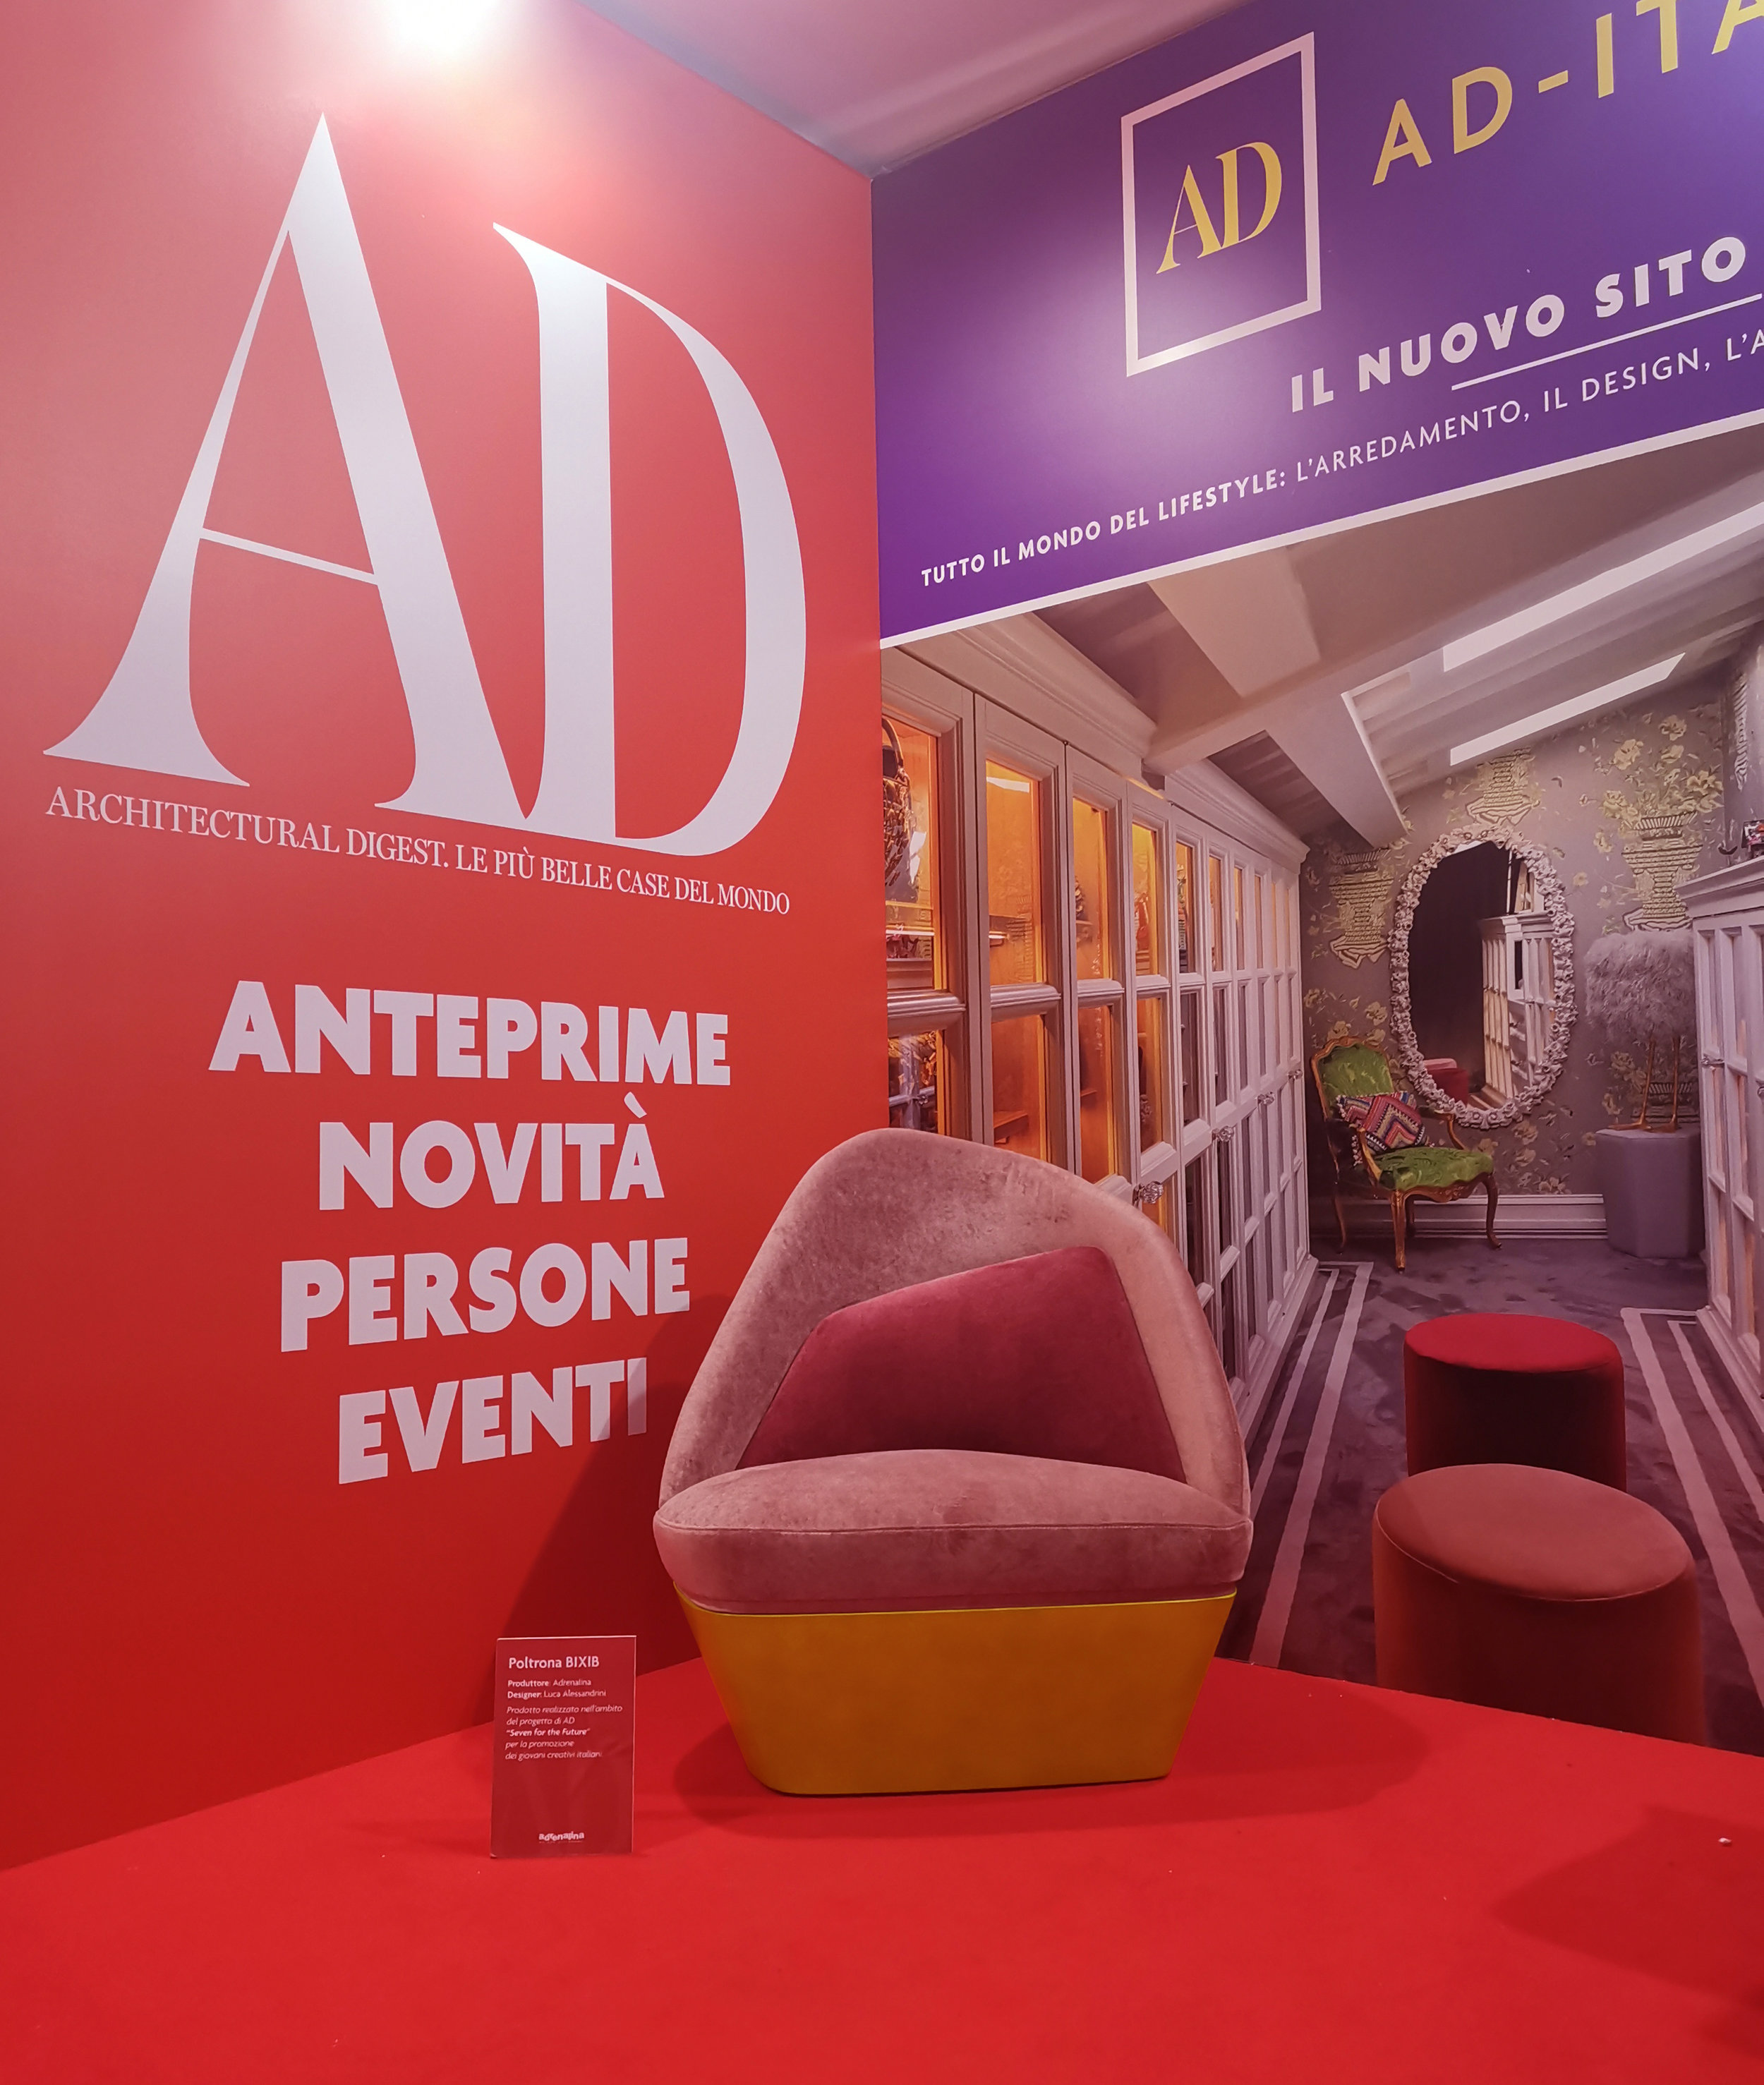 Exhibited by ARCHITECTURAL DIGEST during the Milan Design Week 2019 - as part of the project SEVEN FOR THE FUTURE